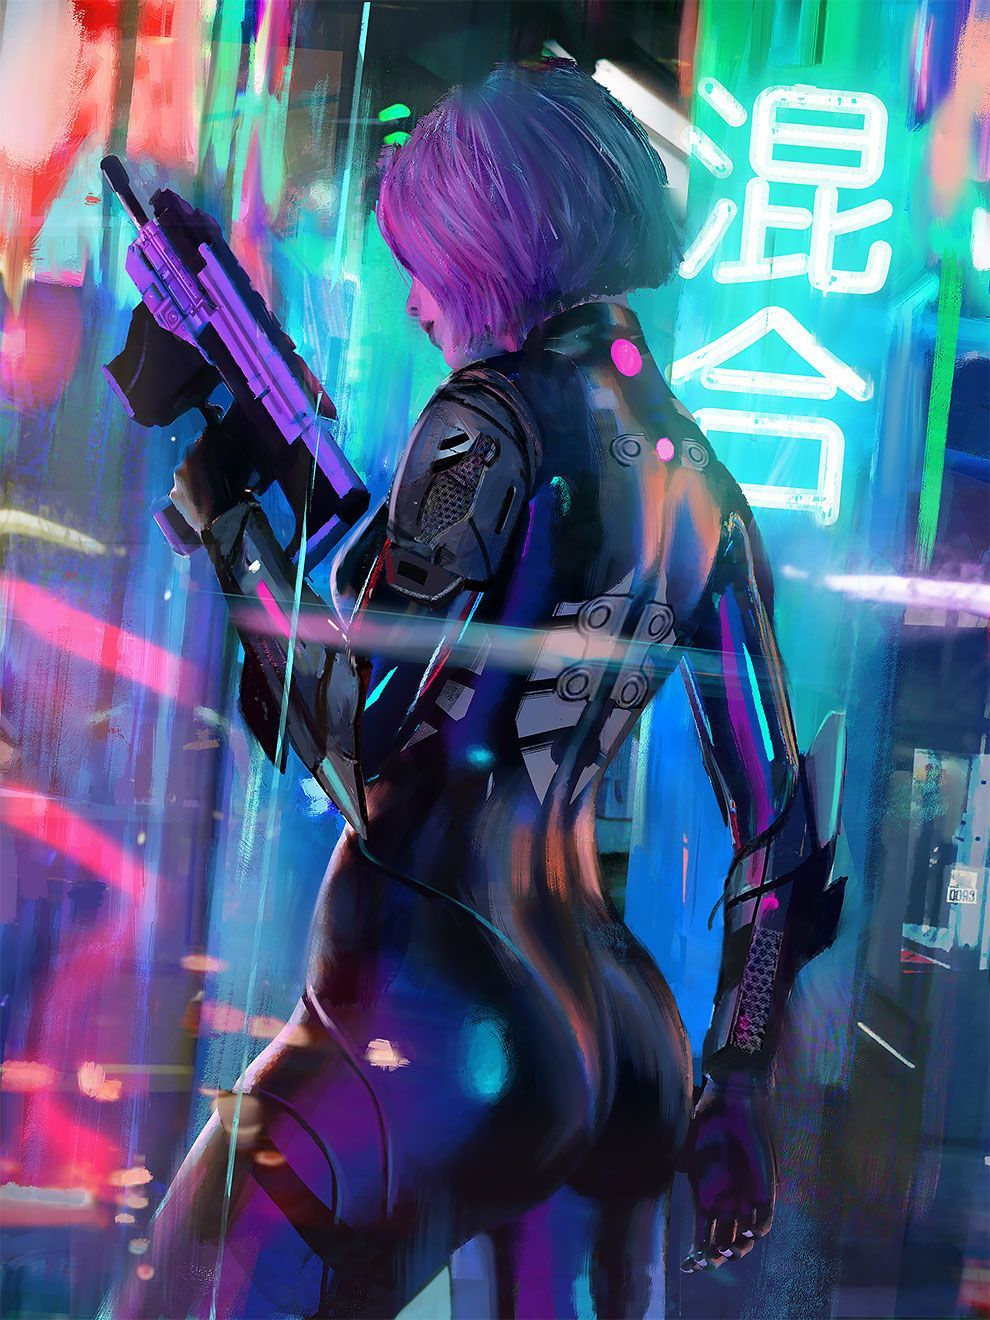 """Chromatic Horizon"": The Superb Neon-Noire Art By Tony Skeor"